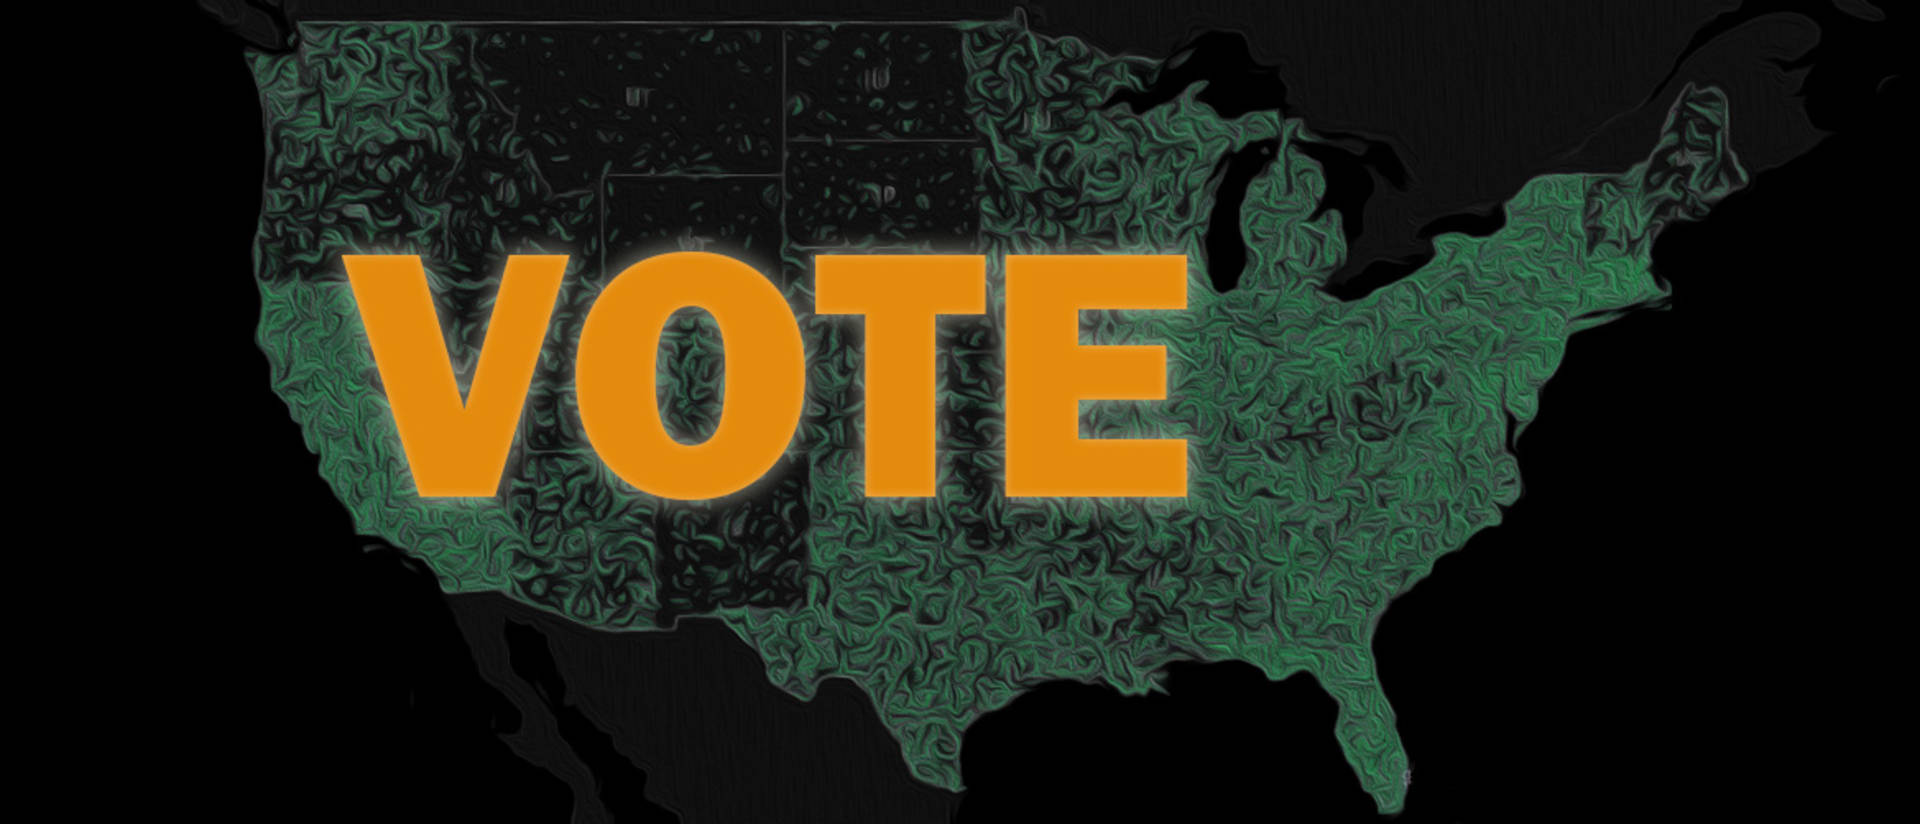 Vote text over image of United States